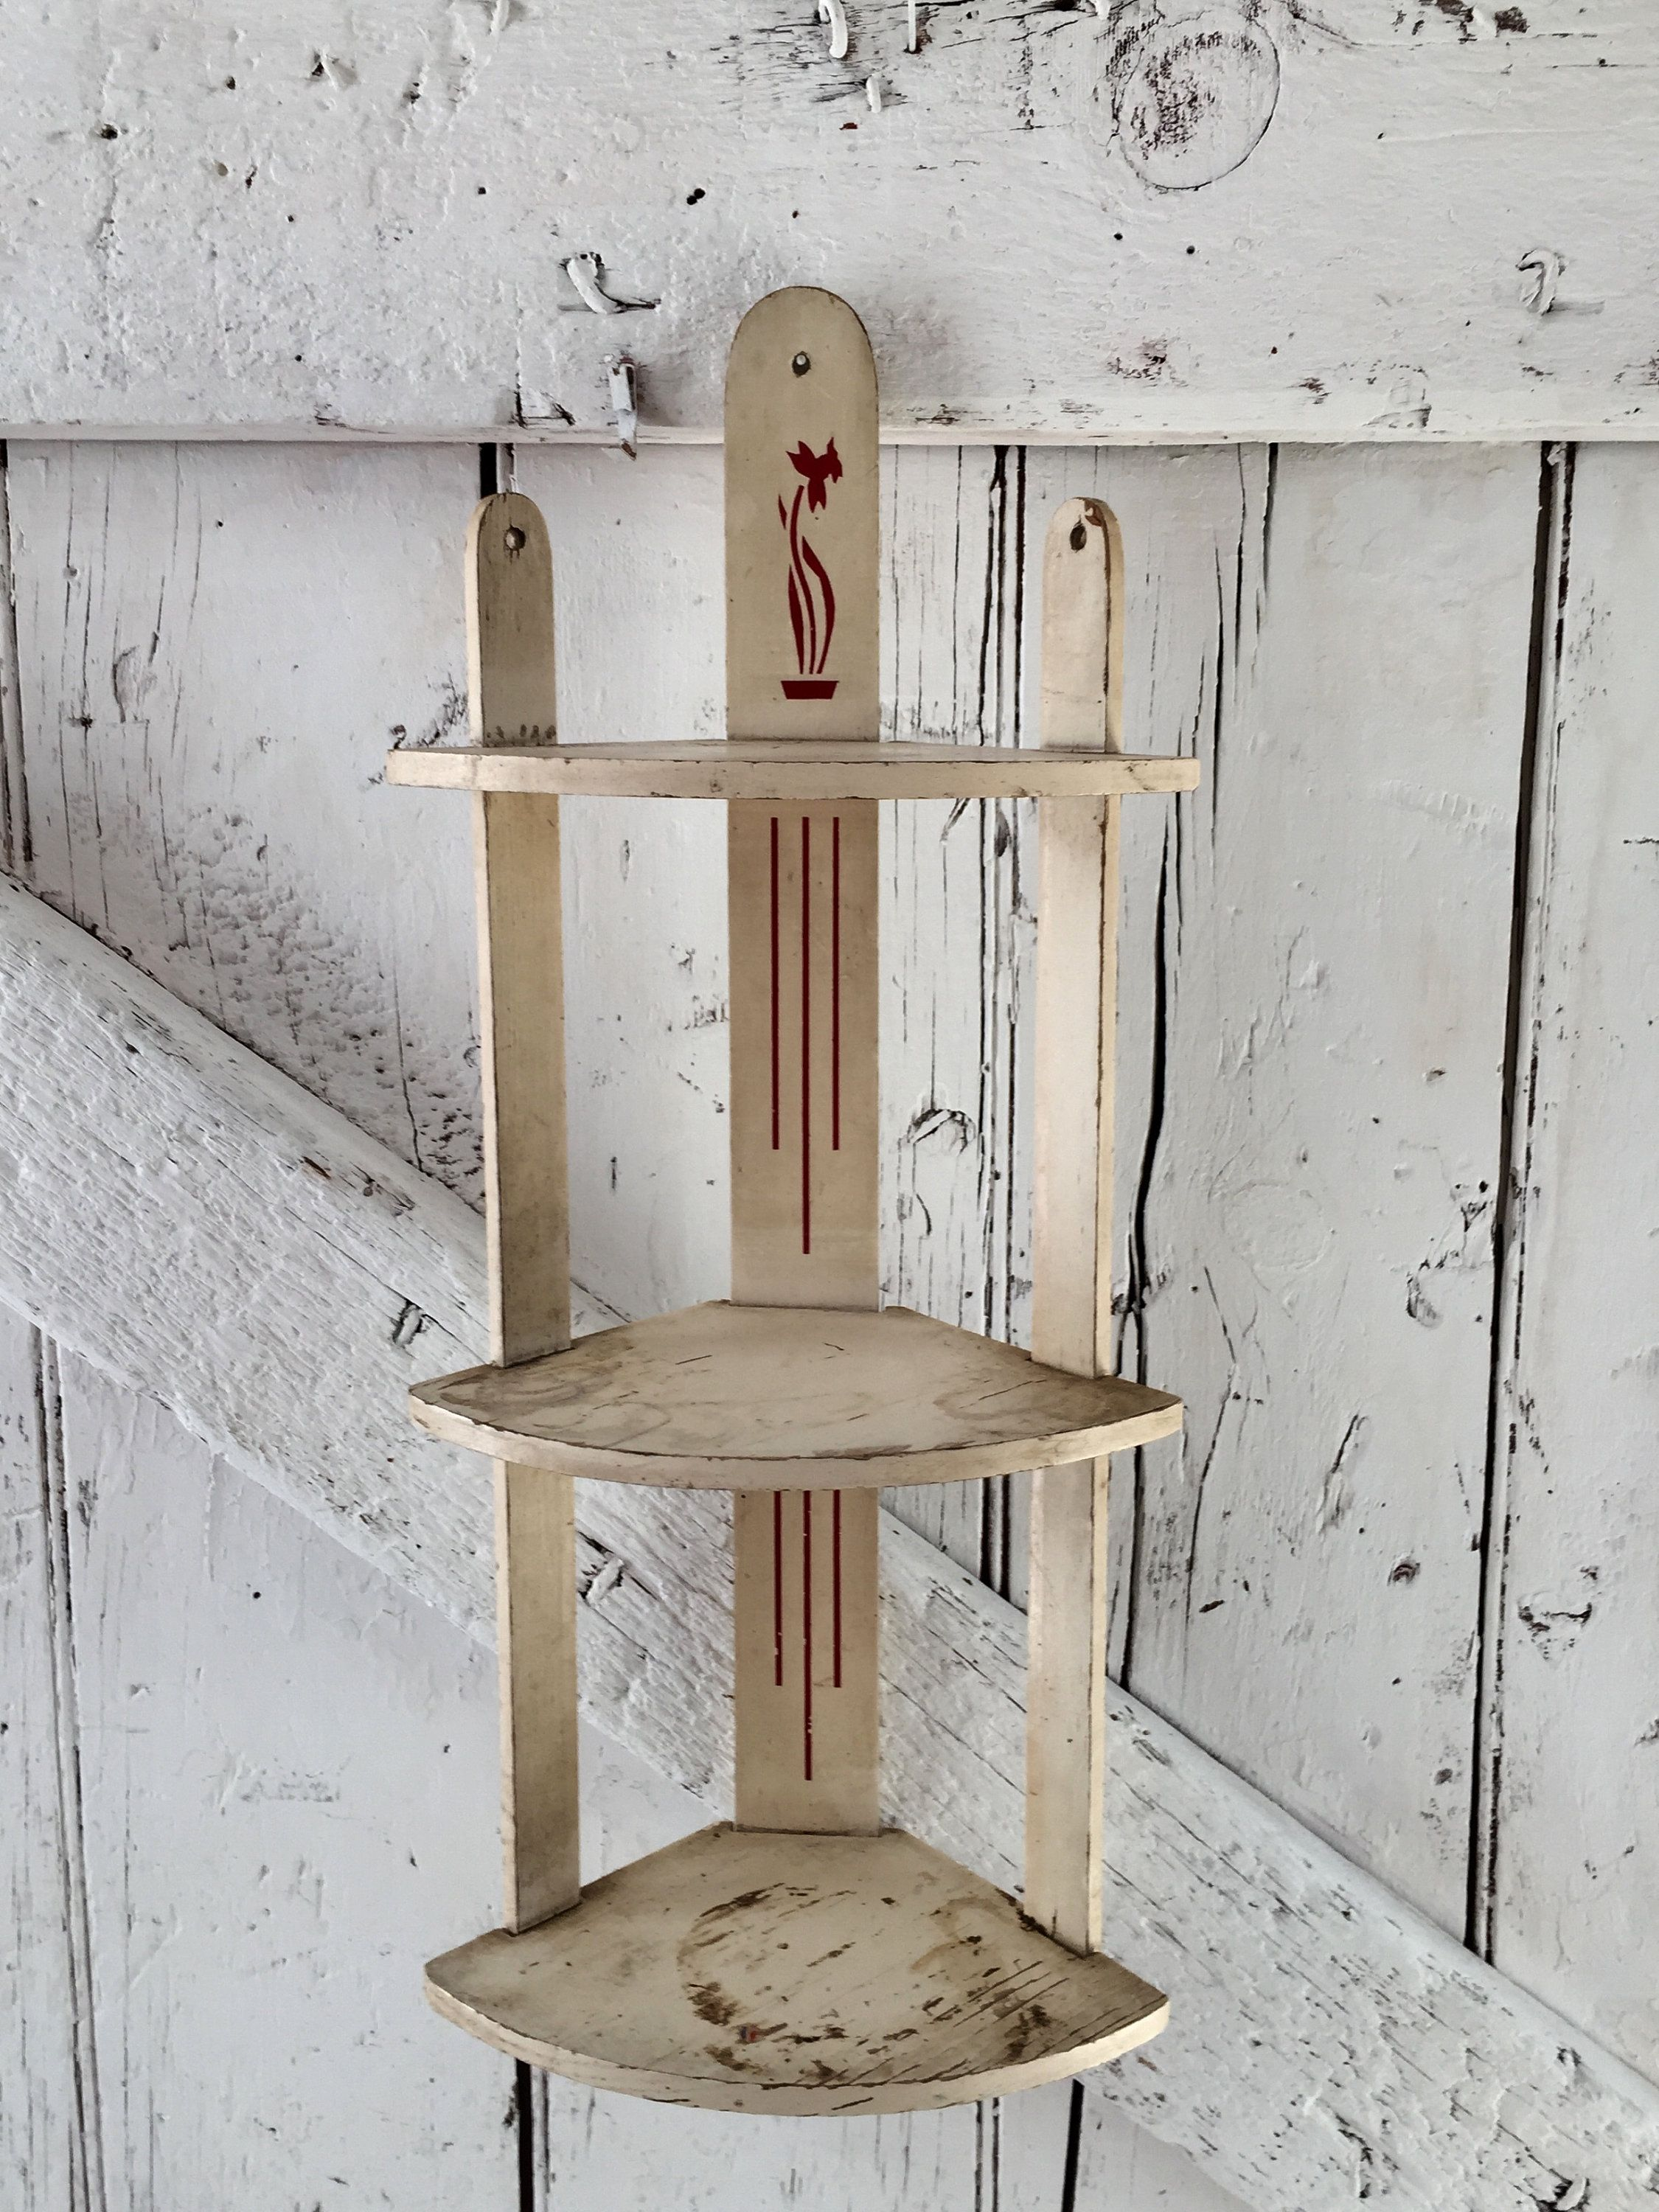 Wood Corner Shelf Vintage White And Red Daffodil Knick Knack 3 Tier Wooden Wall Hanging Wooden Wall Hangings Wood Corner Shelves Shelves